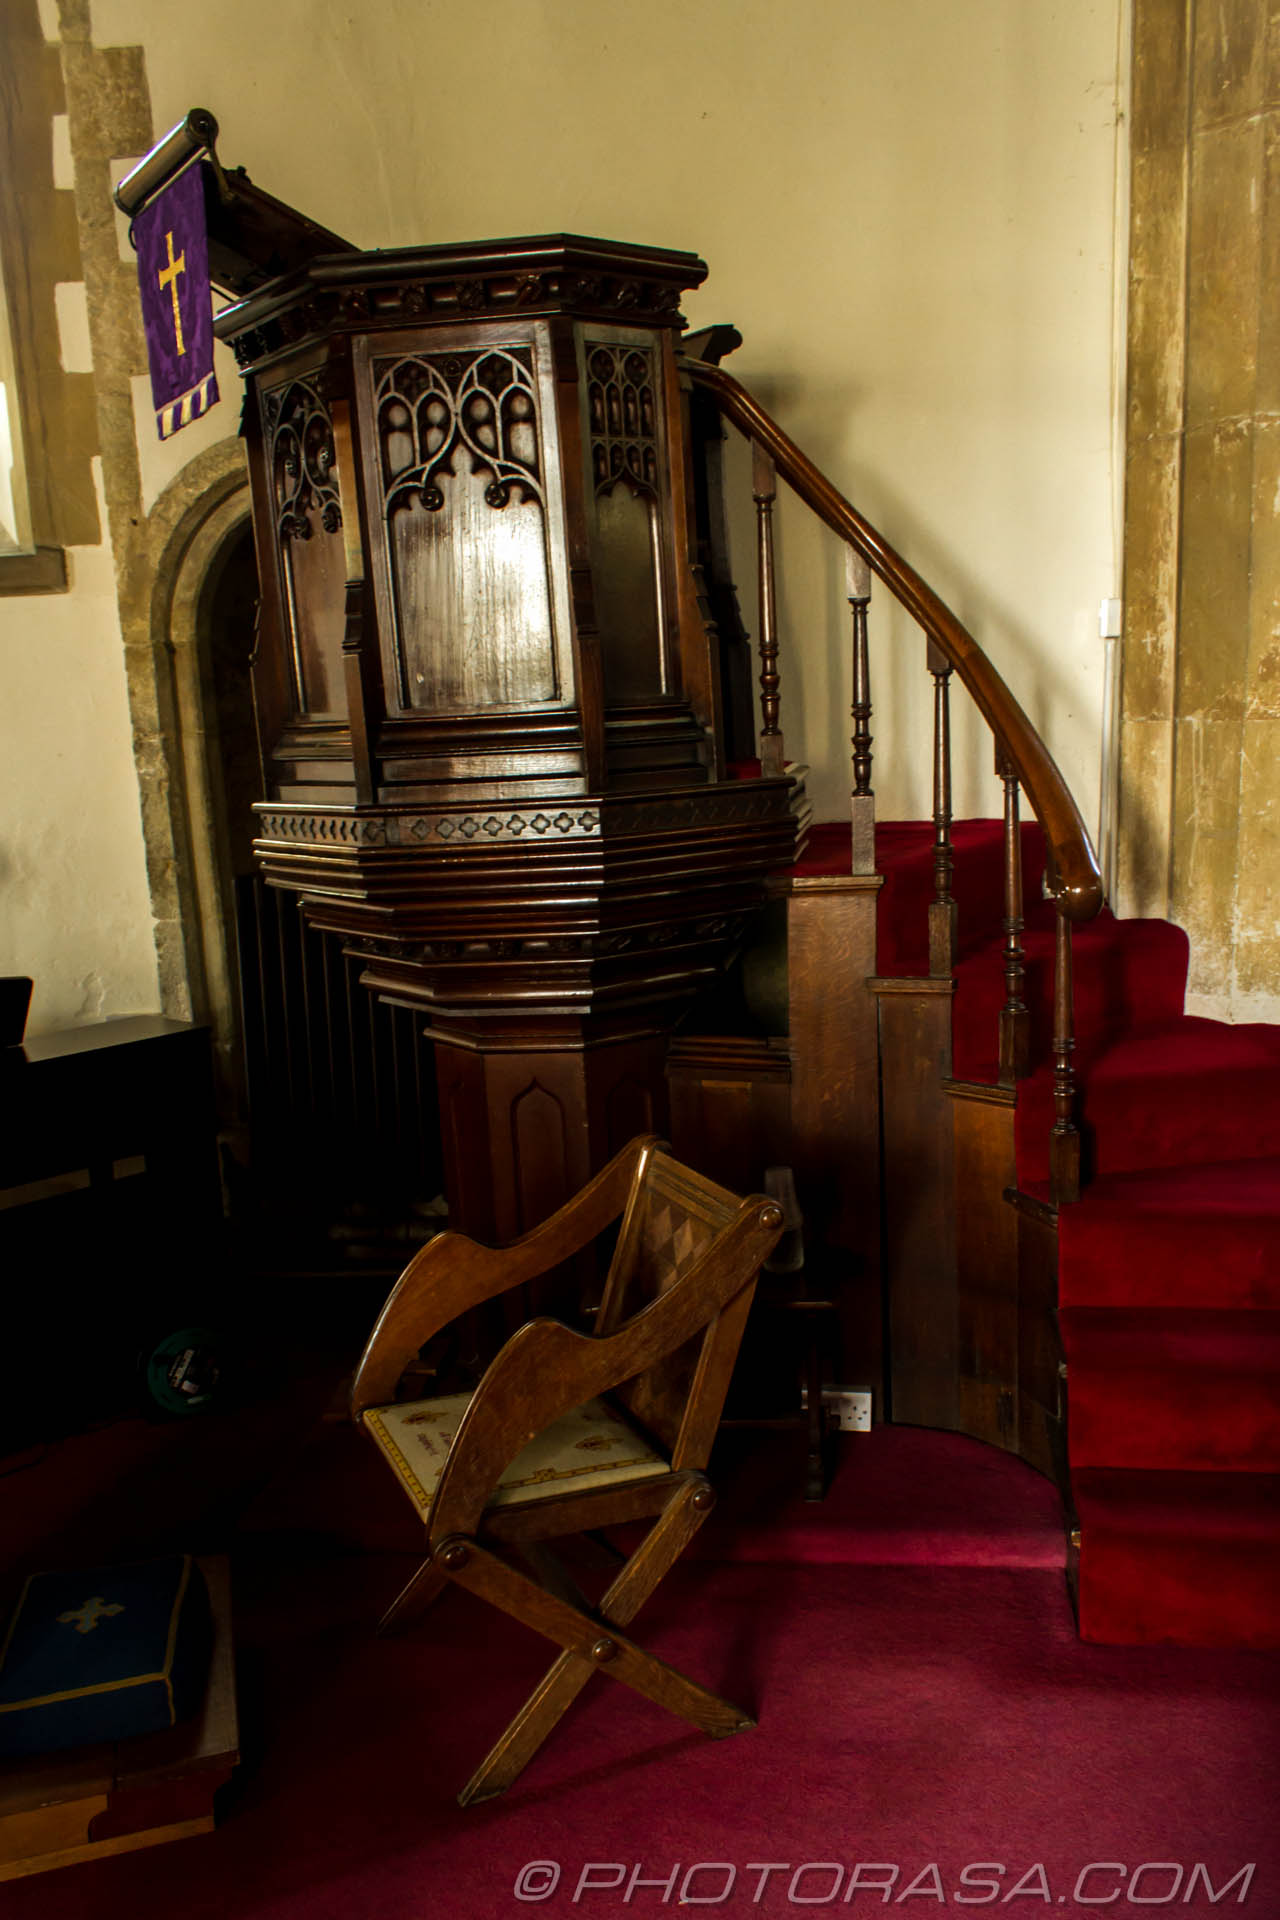 http://photorasa.com/saints-church-staplehurst-kent/chair-and-pulpit/